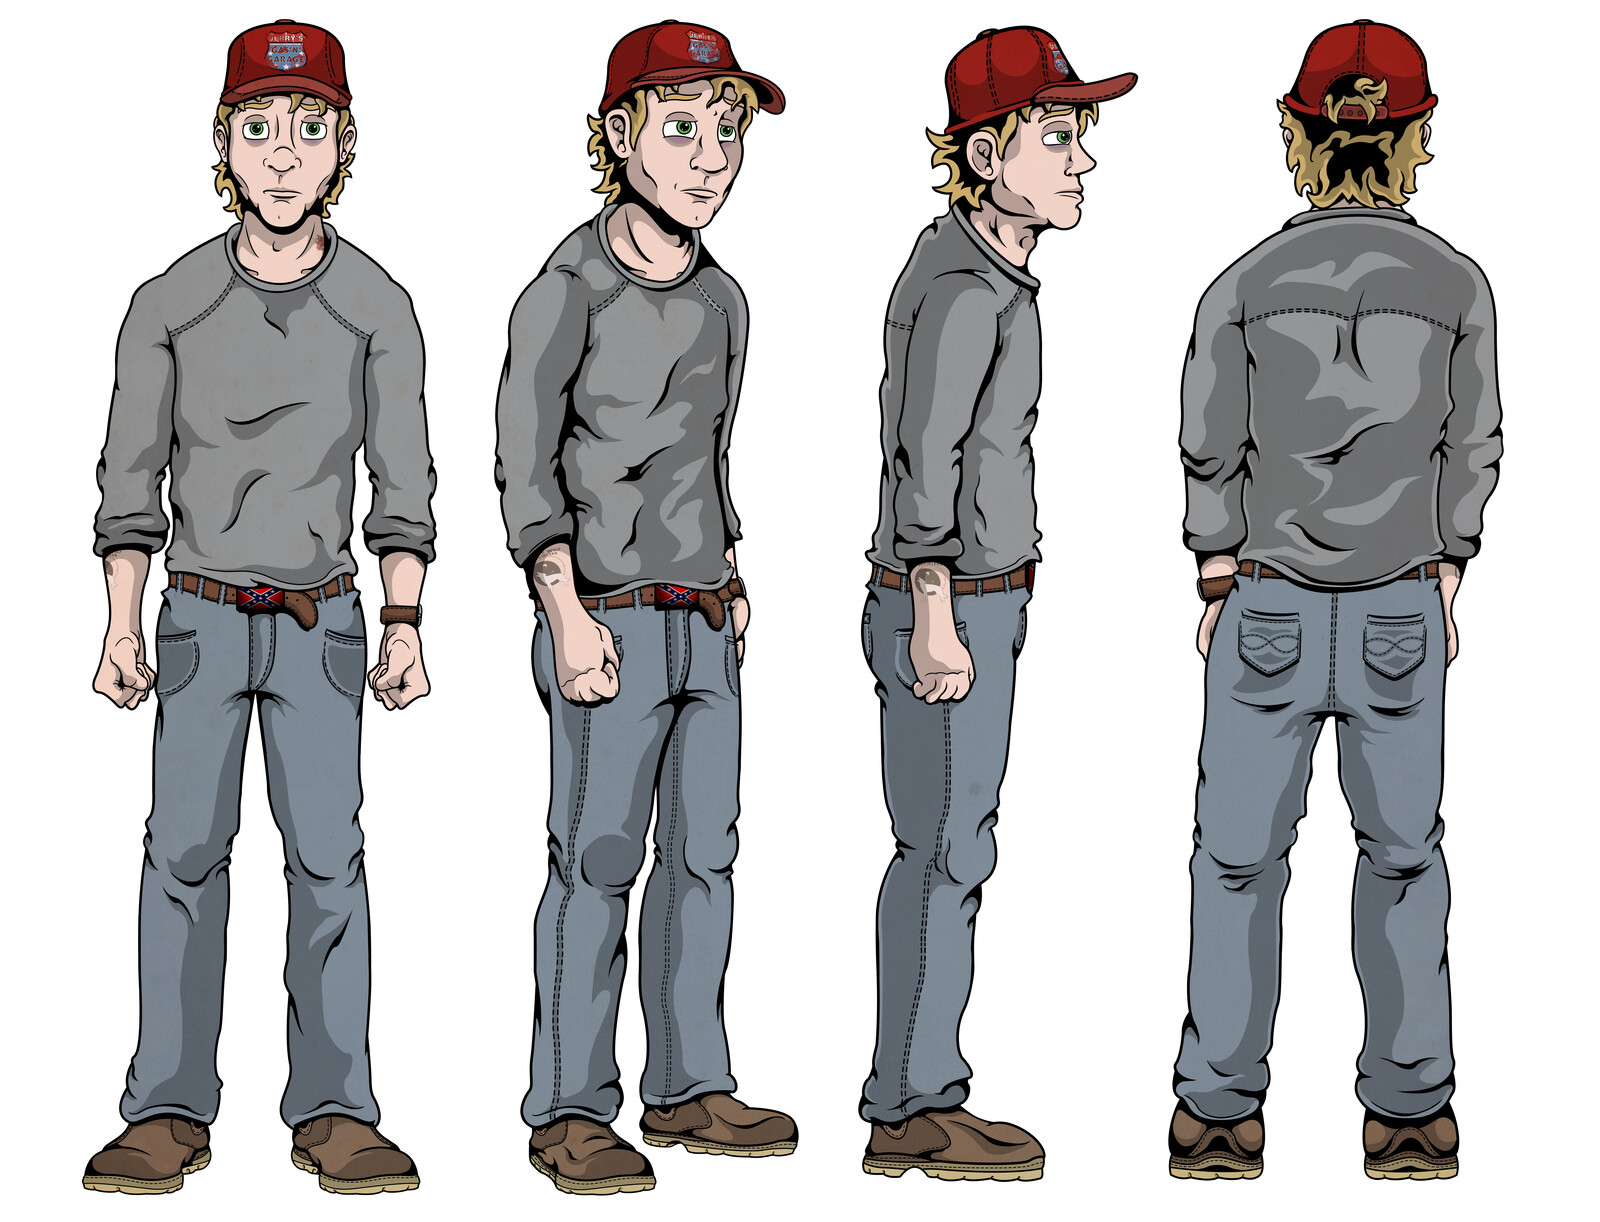 Turntable of Tracey Hudson, to get the feel of how he looks from different angles, his posture, clothing etc. Simple shadows and low detail to keep the turntable  clean.